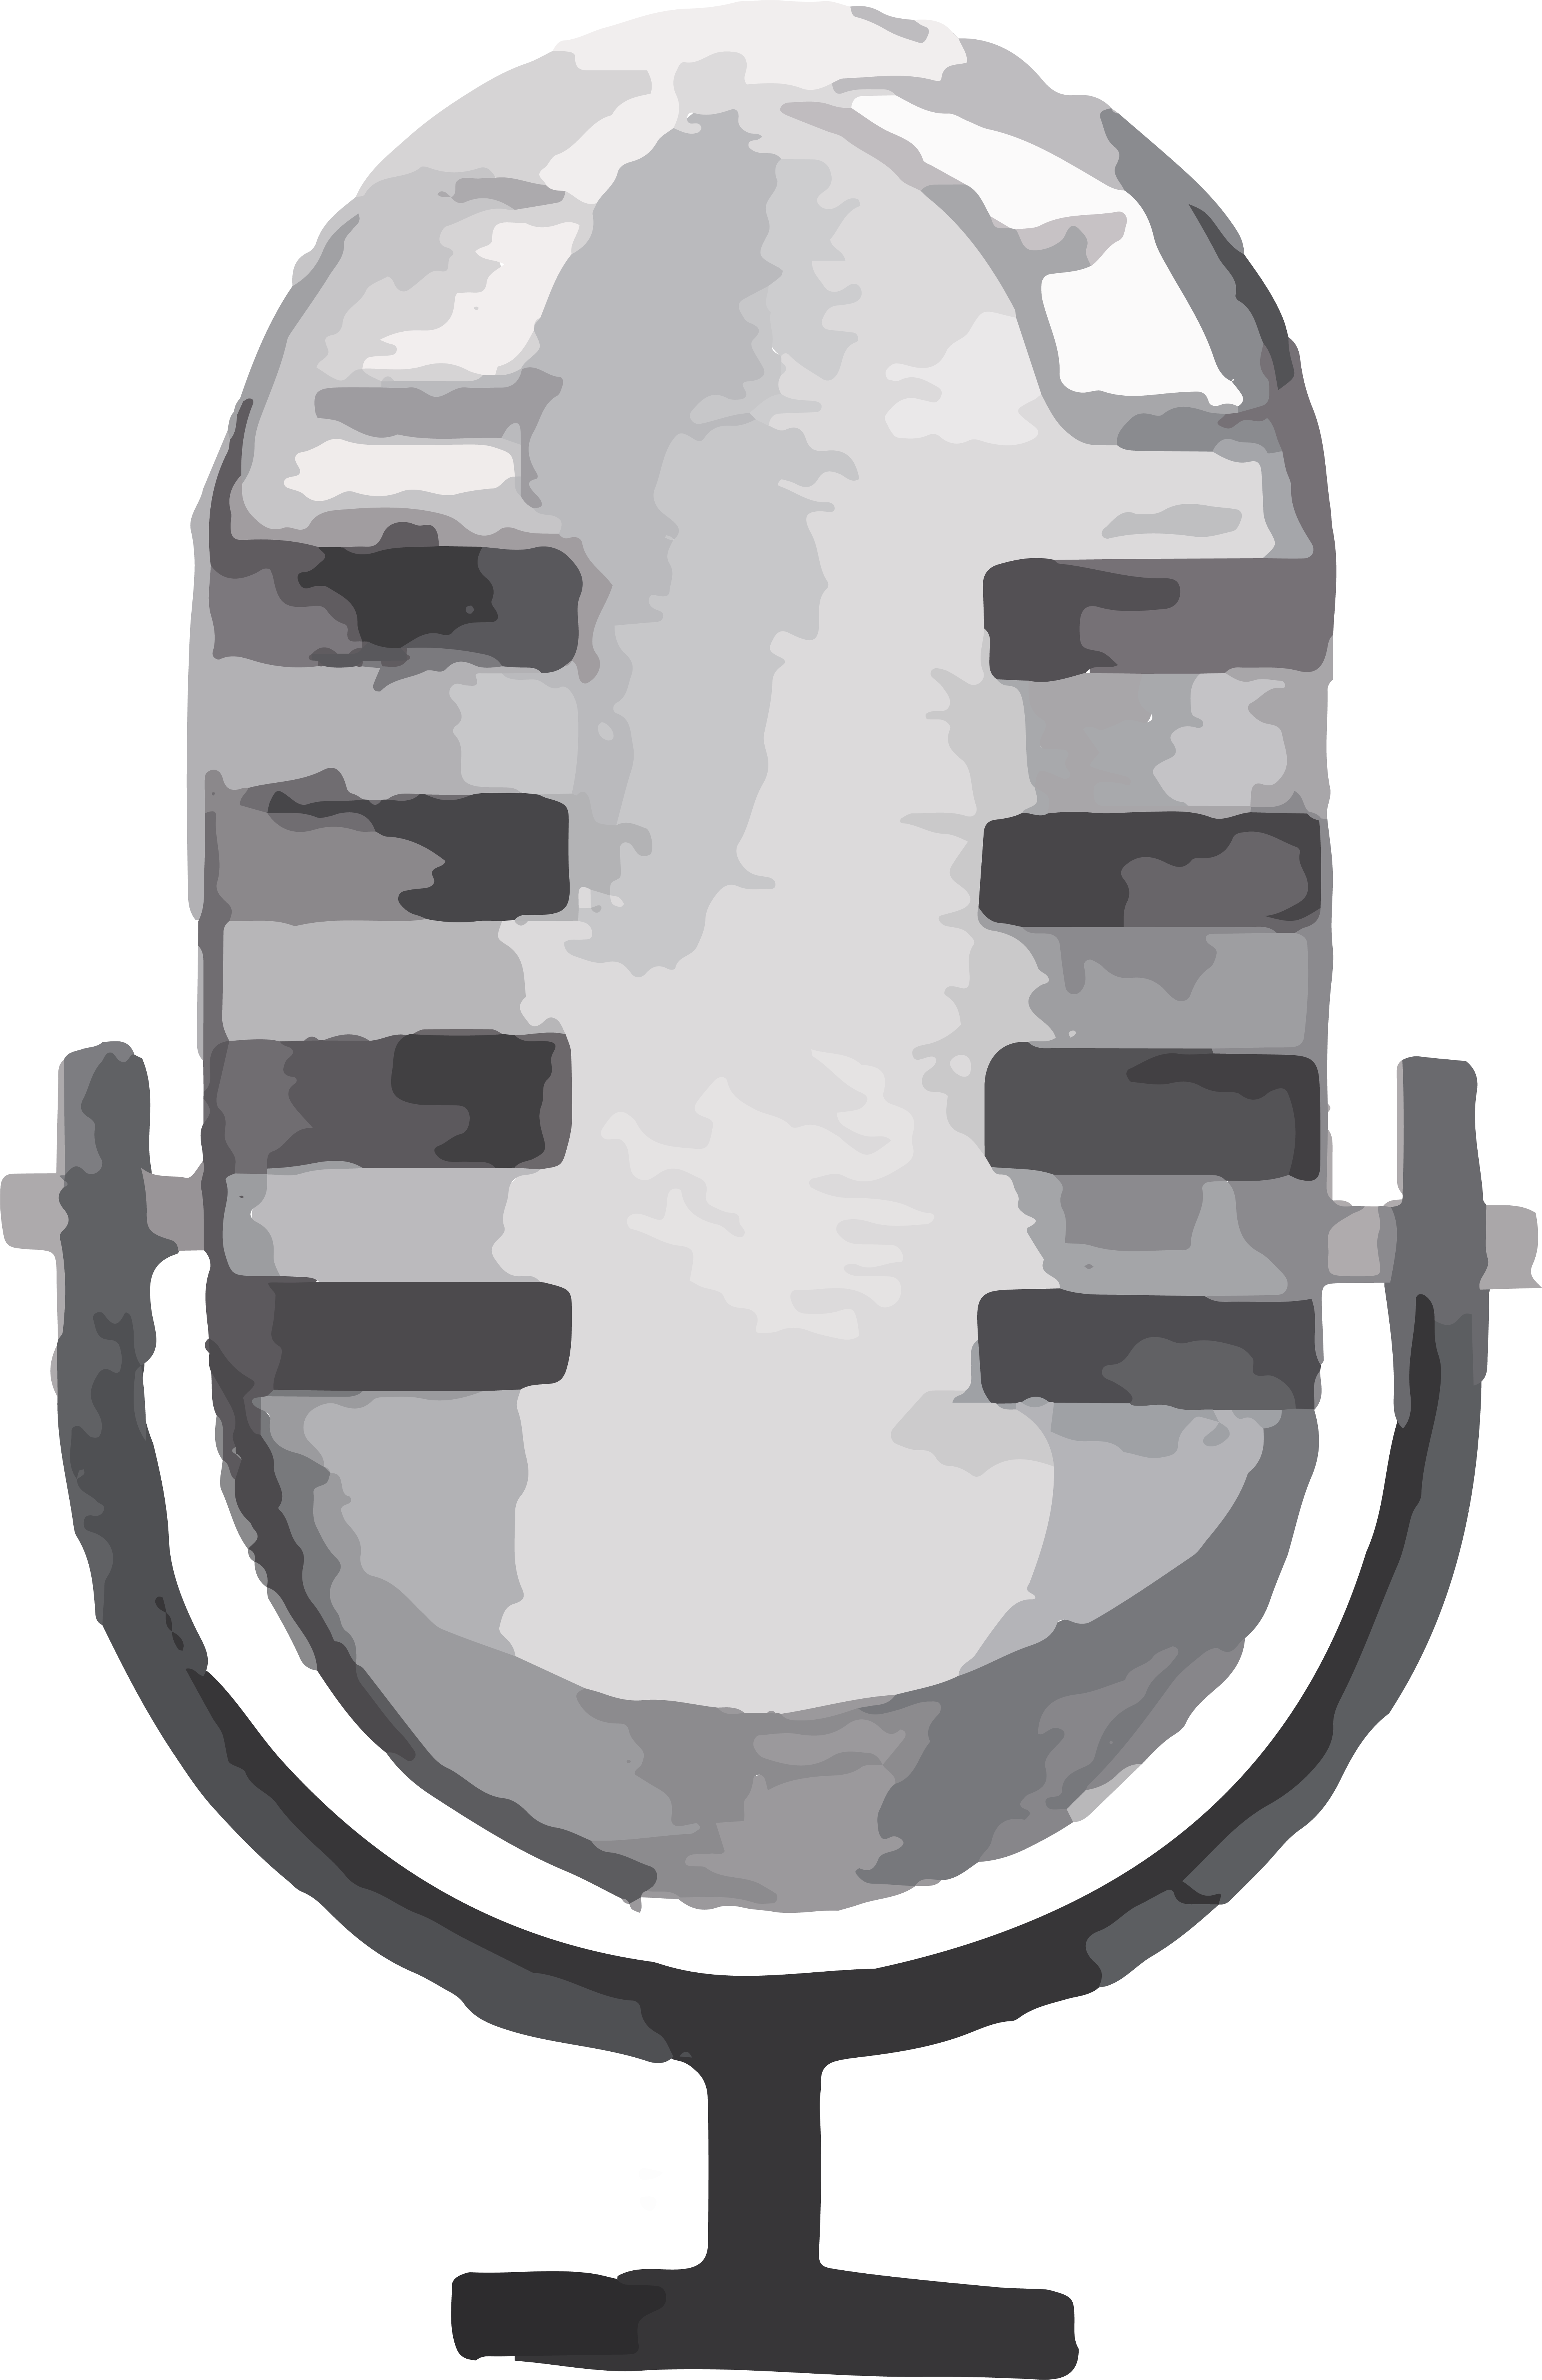 Microphone clipart painting. Watercolor illustration cartoon gray